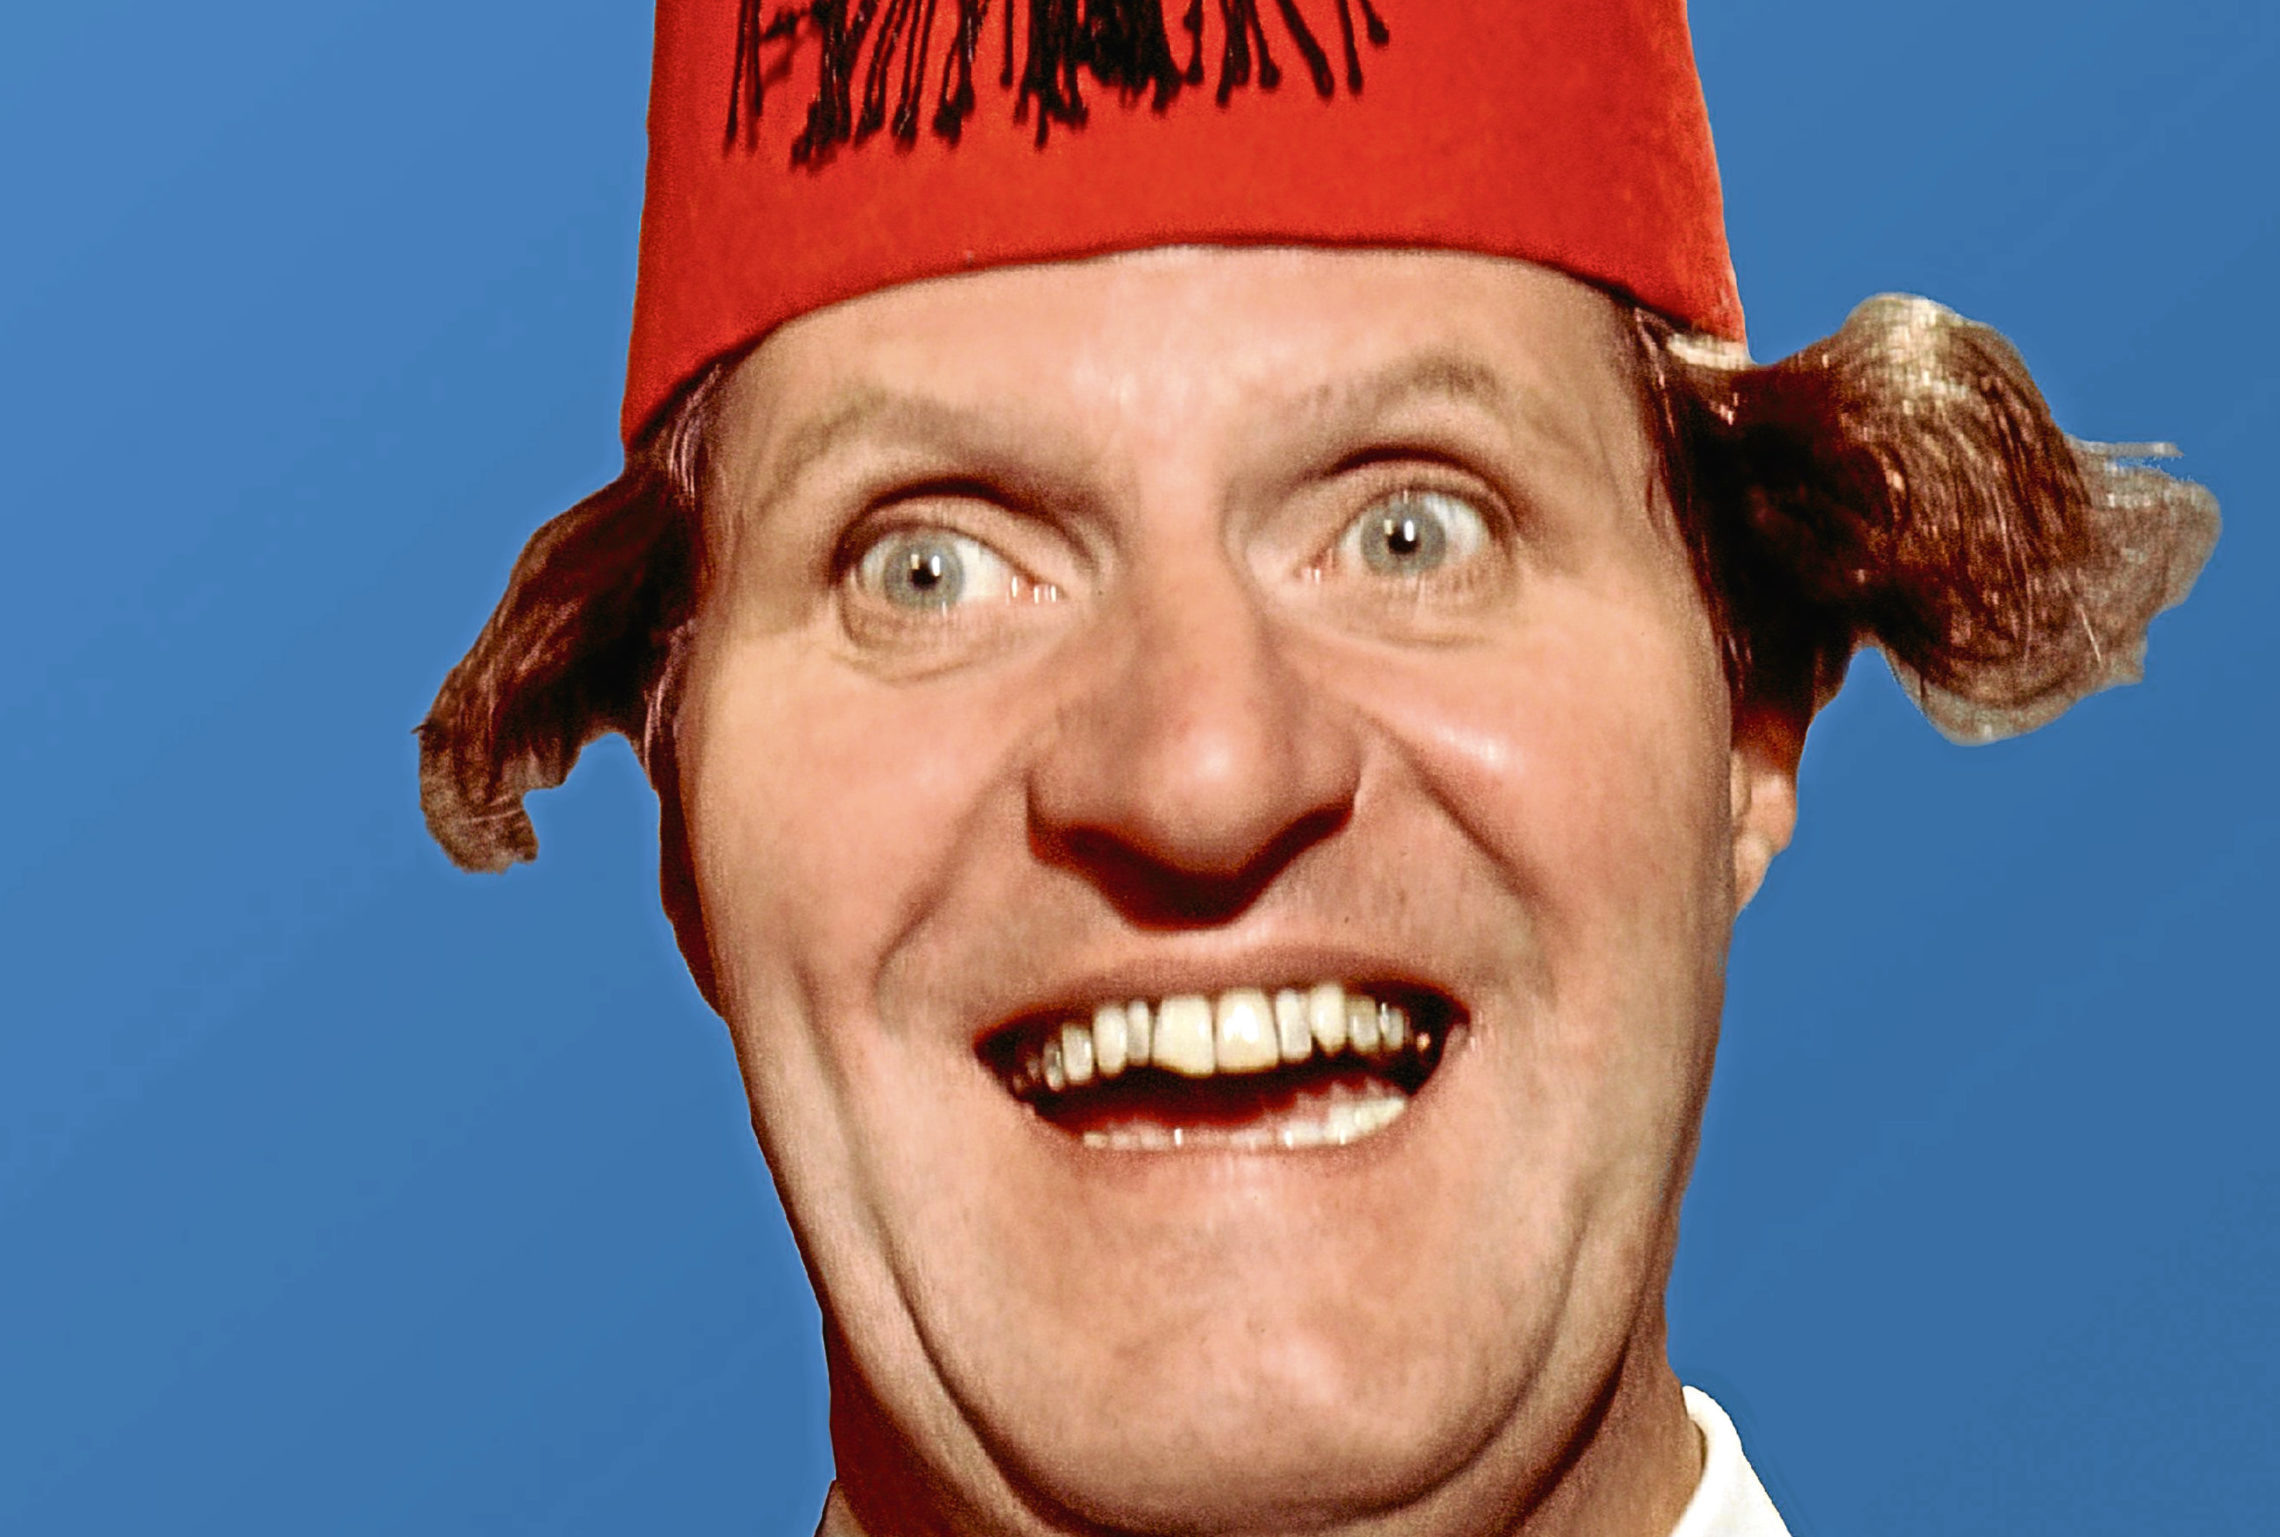 Comedian Tommy Cooper